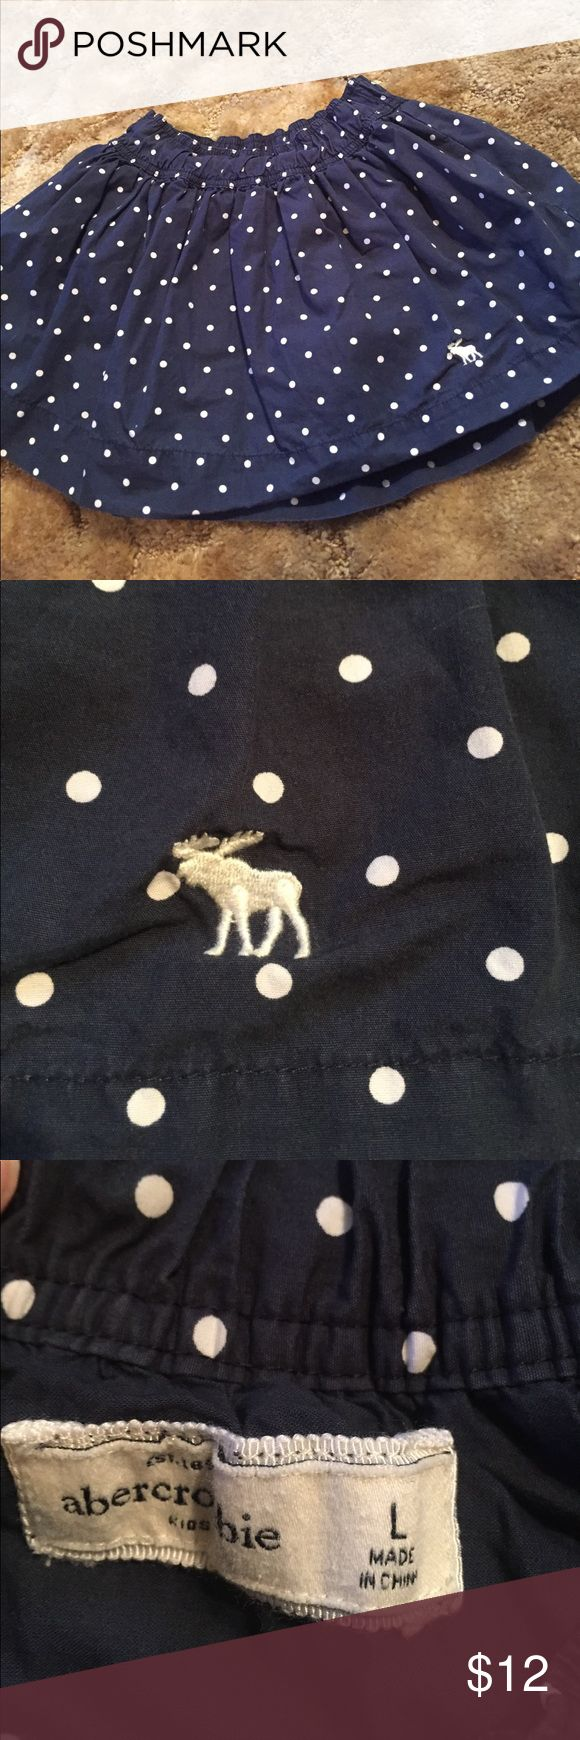 Girls bundle! 3 bottoms abercrombie kids navy and white polka dot skirt! In great condition. It has a navy blue ruffle lining. Very stretchy elastic waistband.       Gap kids denim shorts with polka dots, cuffed hem. Children's Place pants. Purple and blue floral pattern. All items are in excellent condition! GAP Bottoms Skirts